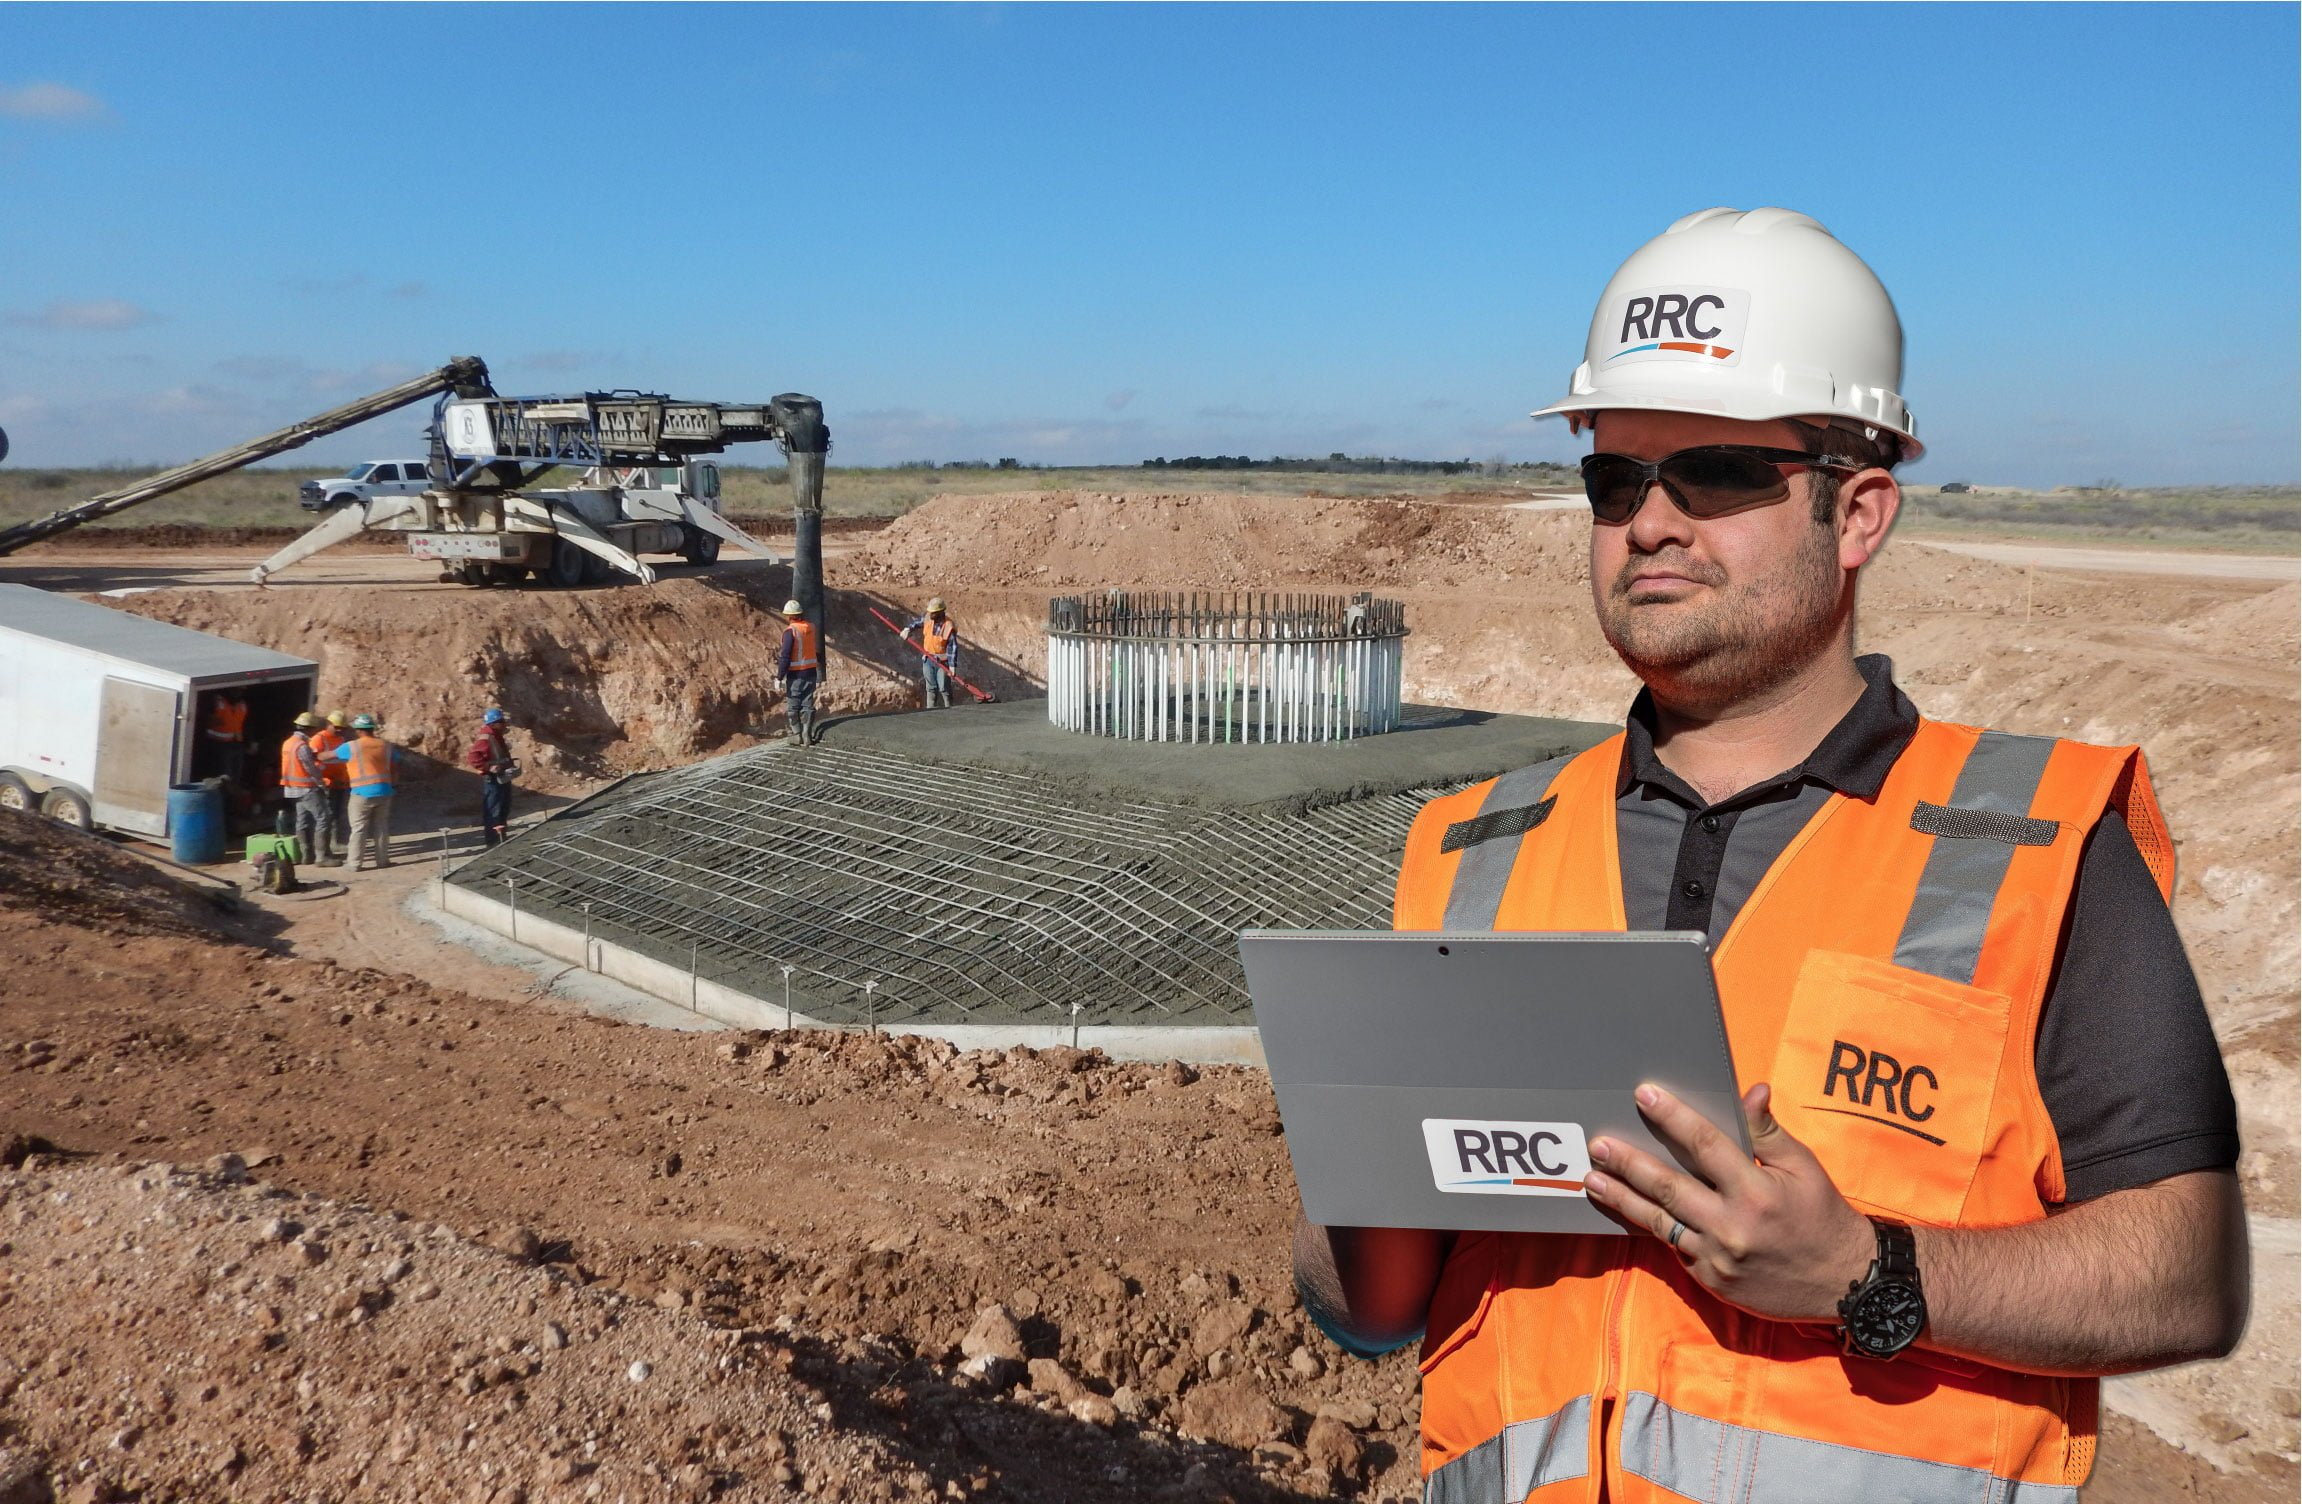 RRC employee in safety gear review information on tablet at wind foundation site